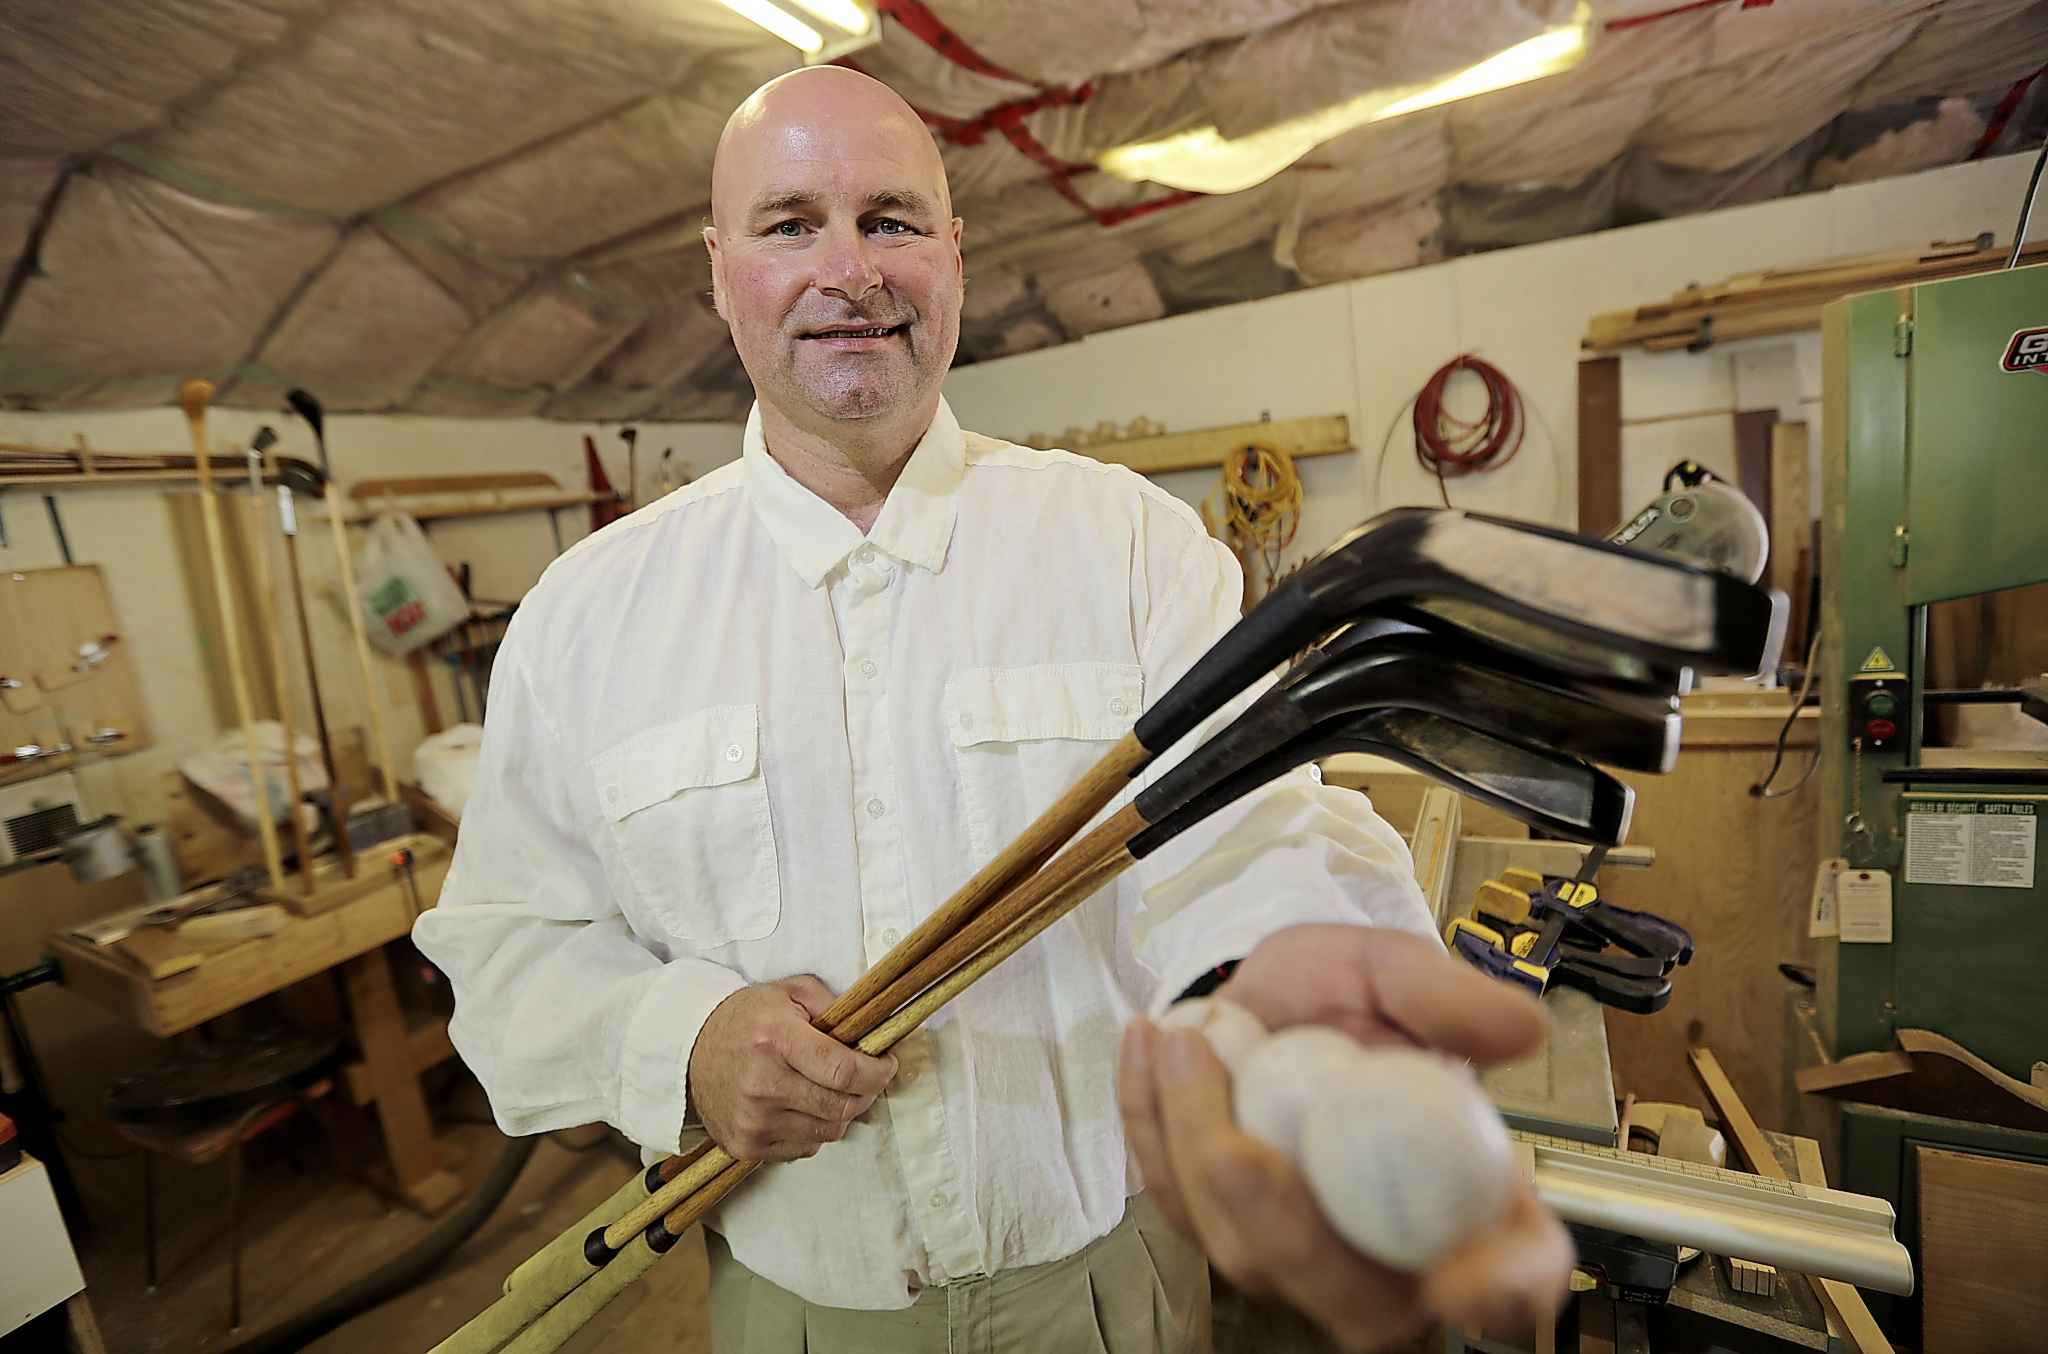 Kelly Leonard makes hickory golf clubs, some of which are replicas of clubs dating back to the 1800s. (Photos by Trevor Hagan / Winnipeg Free Press)